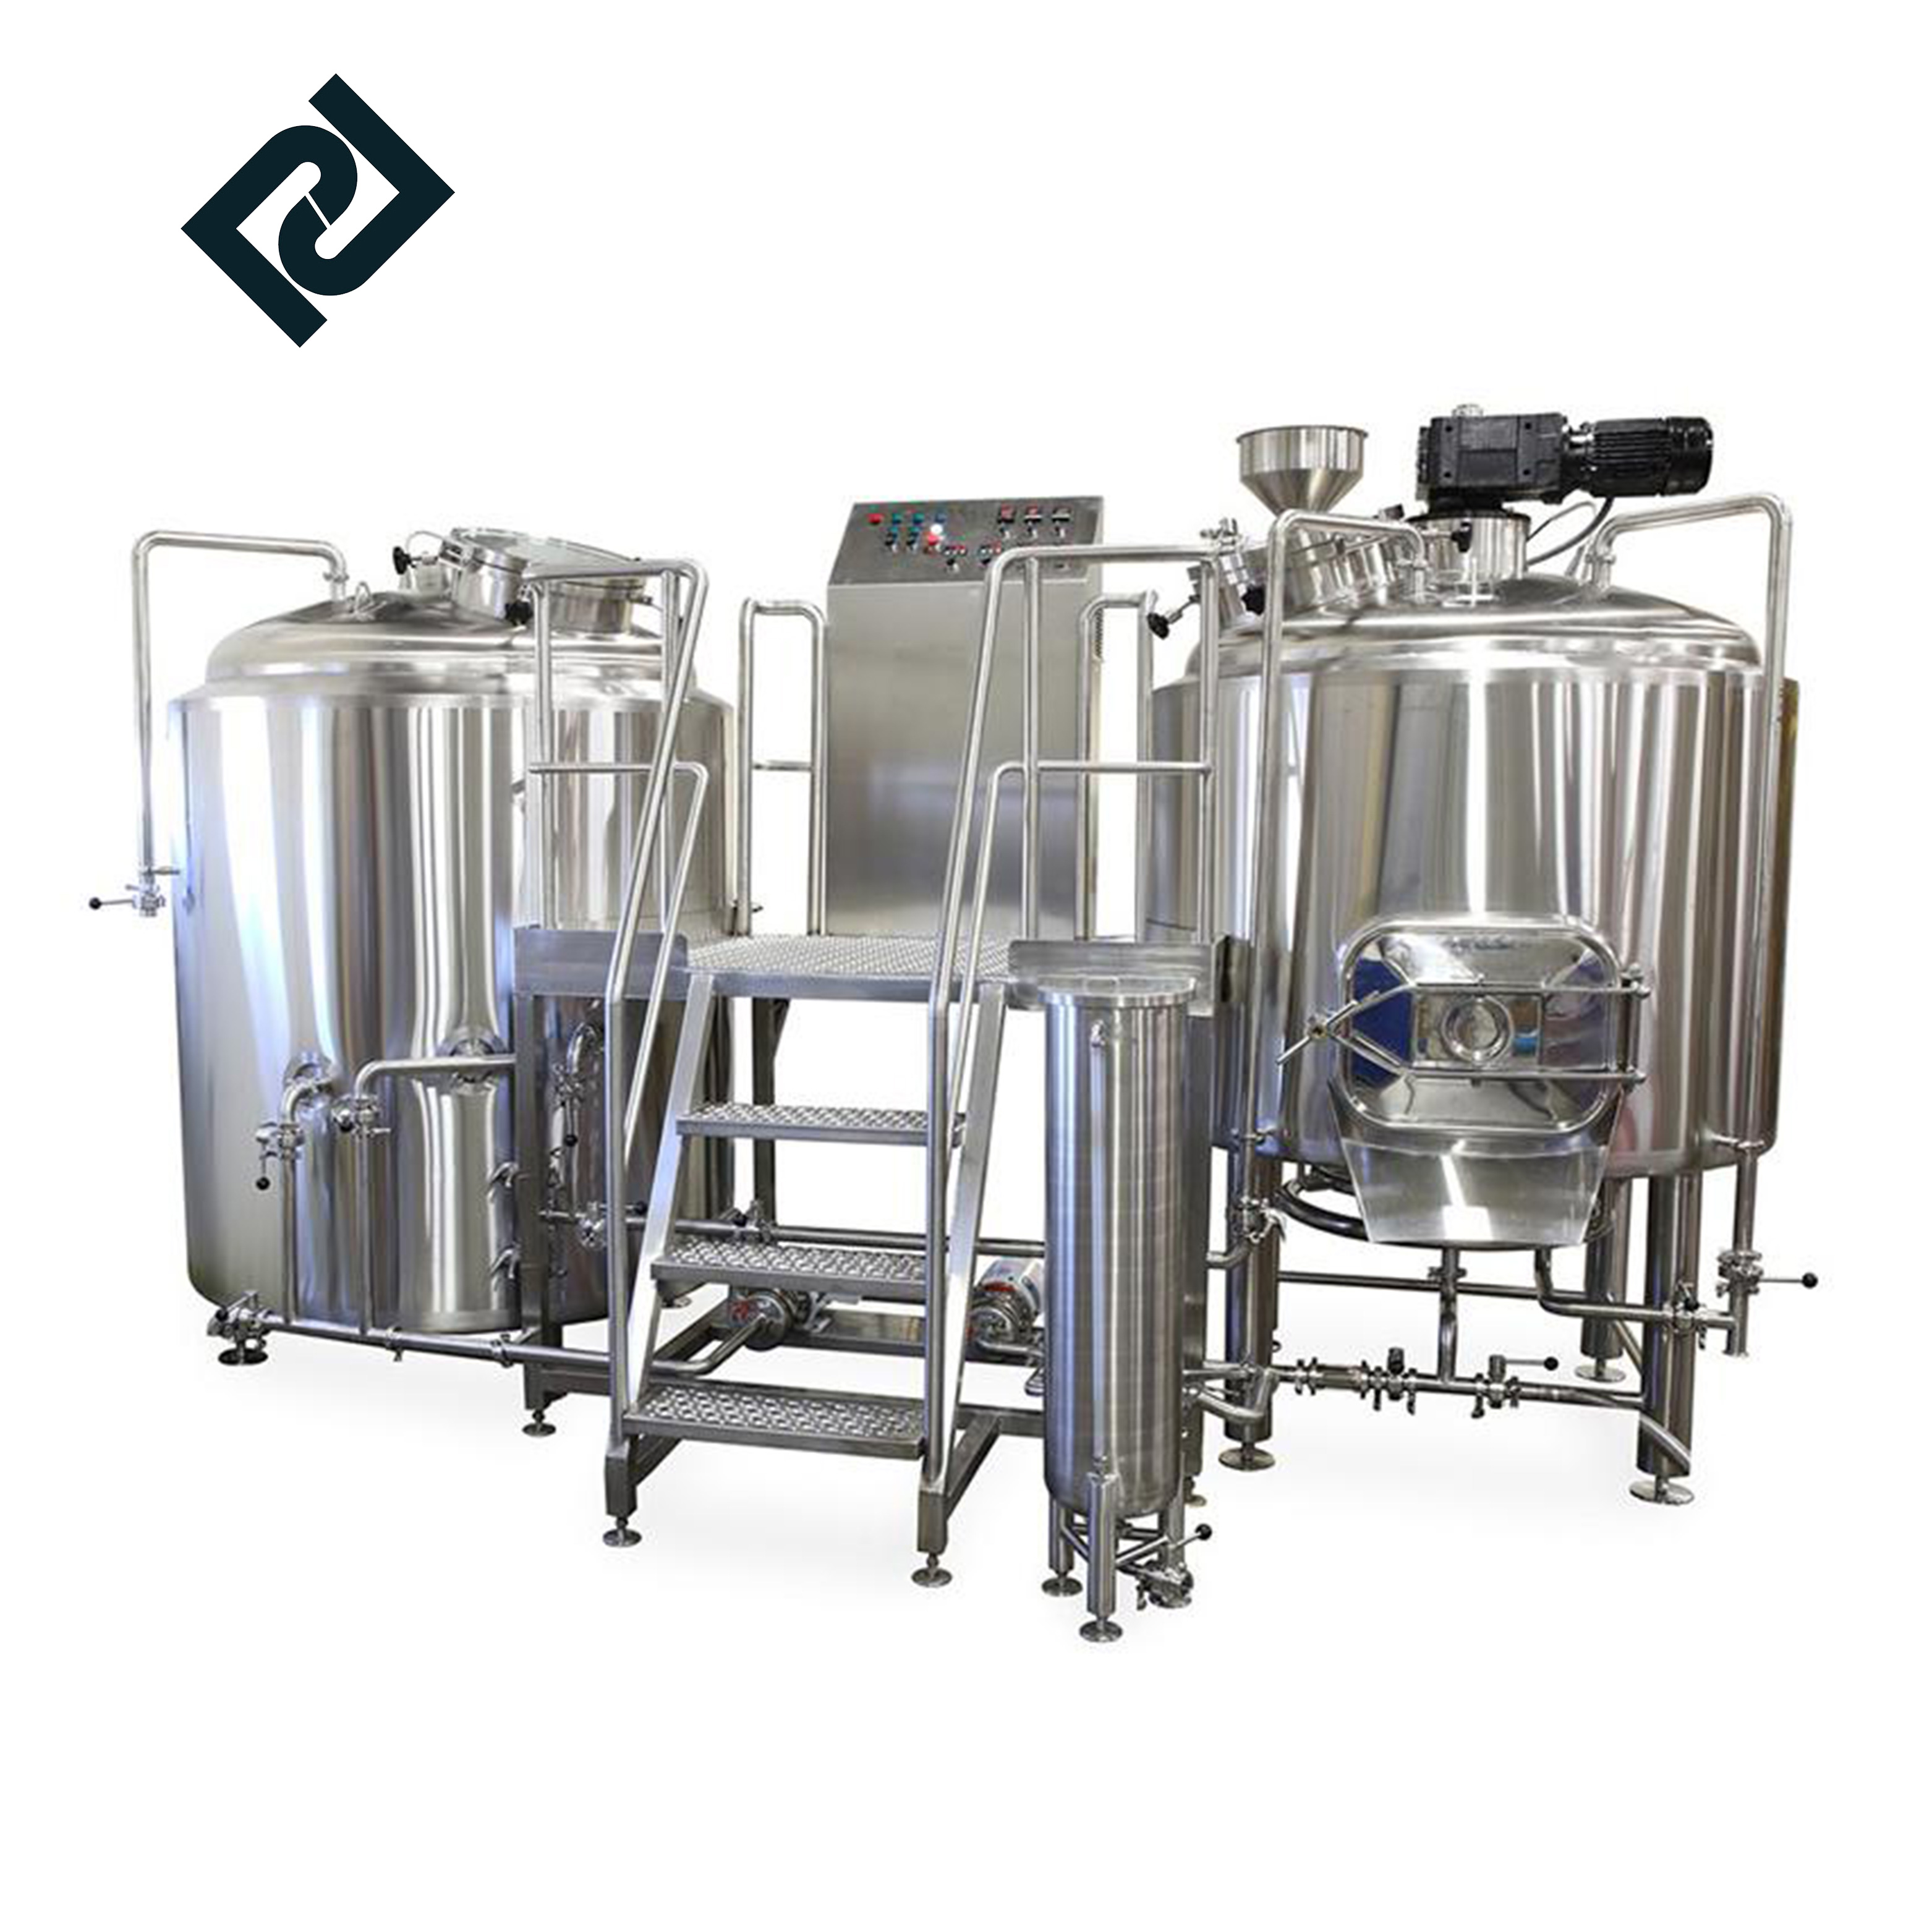 Special Design for Lager Beer Brewing Equipment - 5bbl-15bbl craft beer making system craft beer brewing equipment for microbrewery equipment – Pijiang